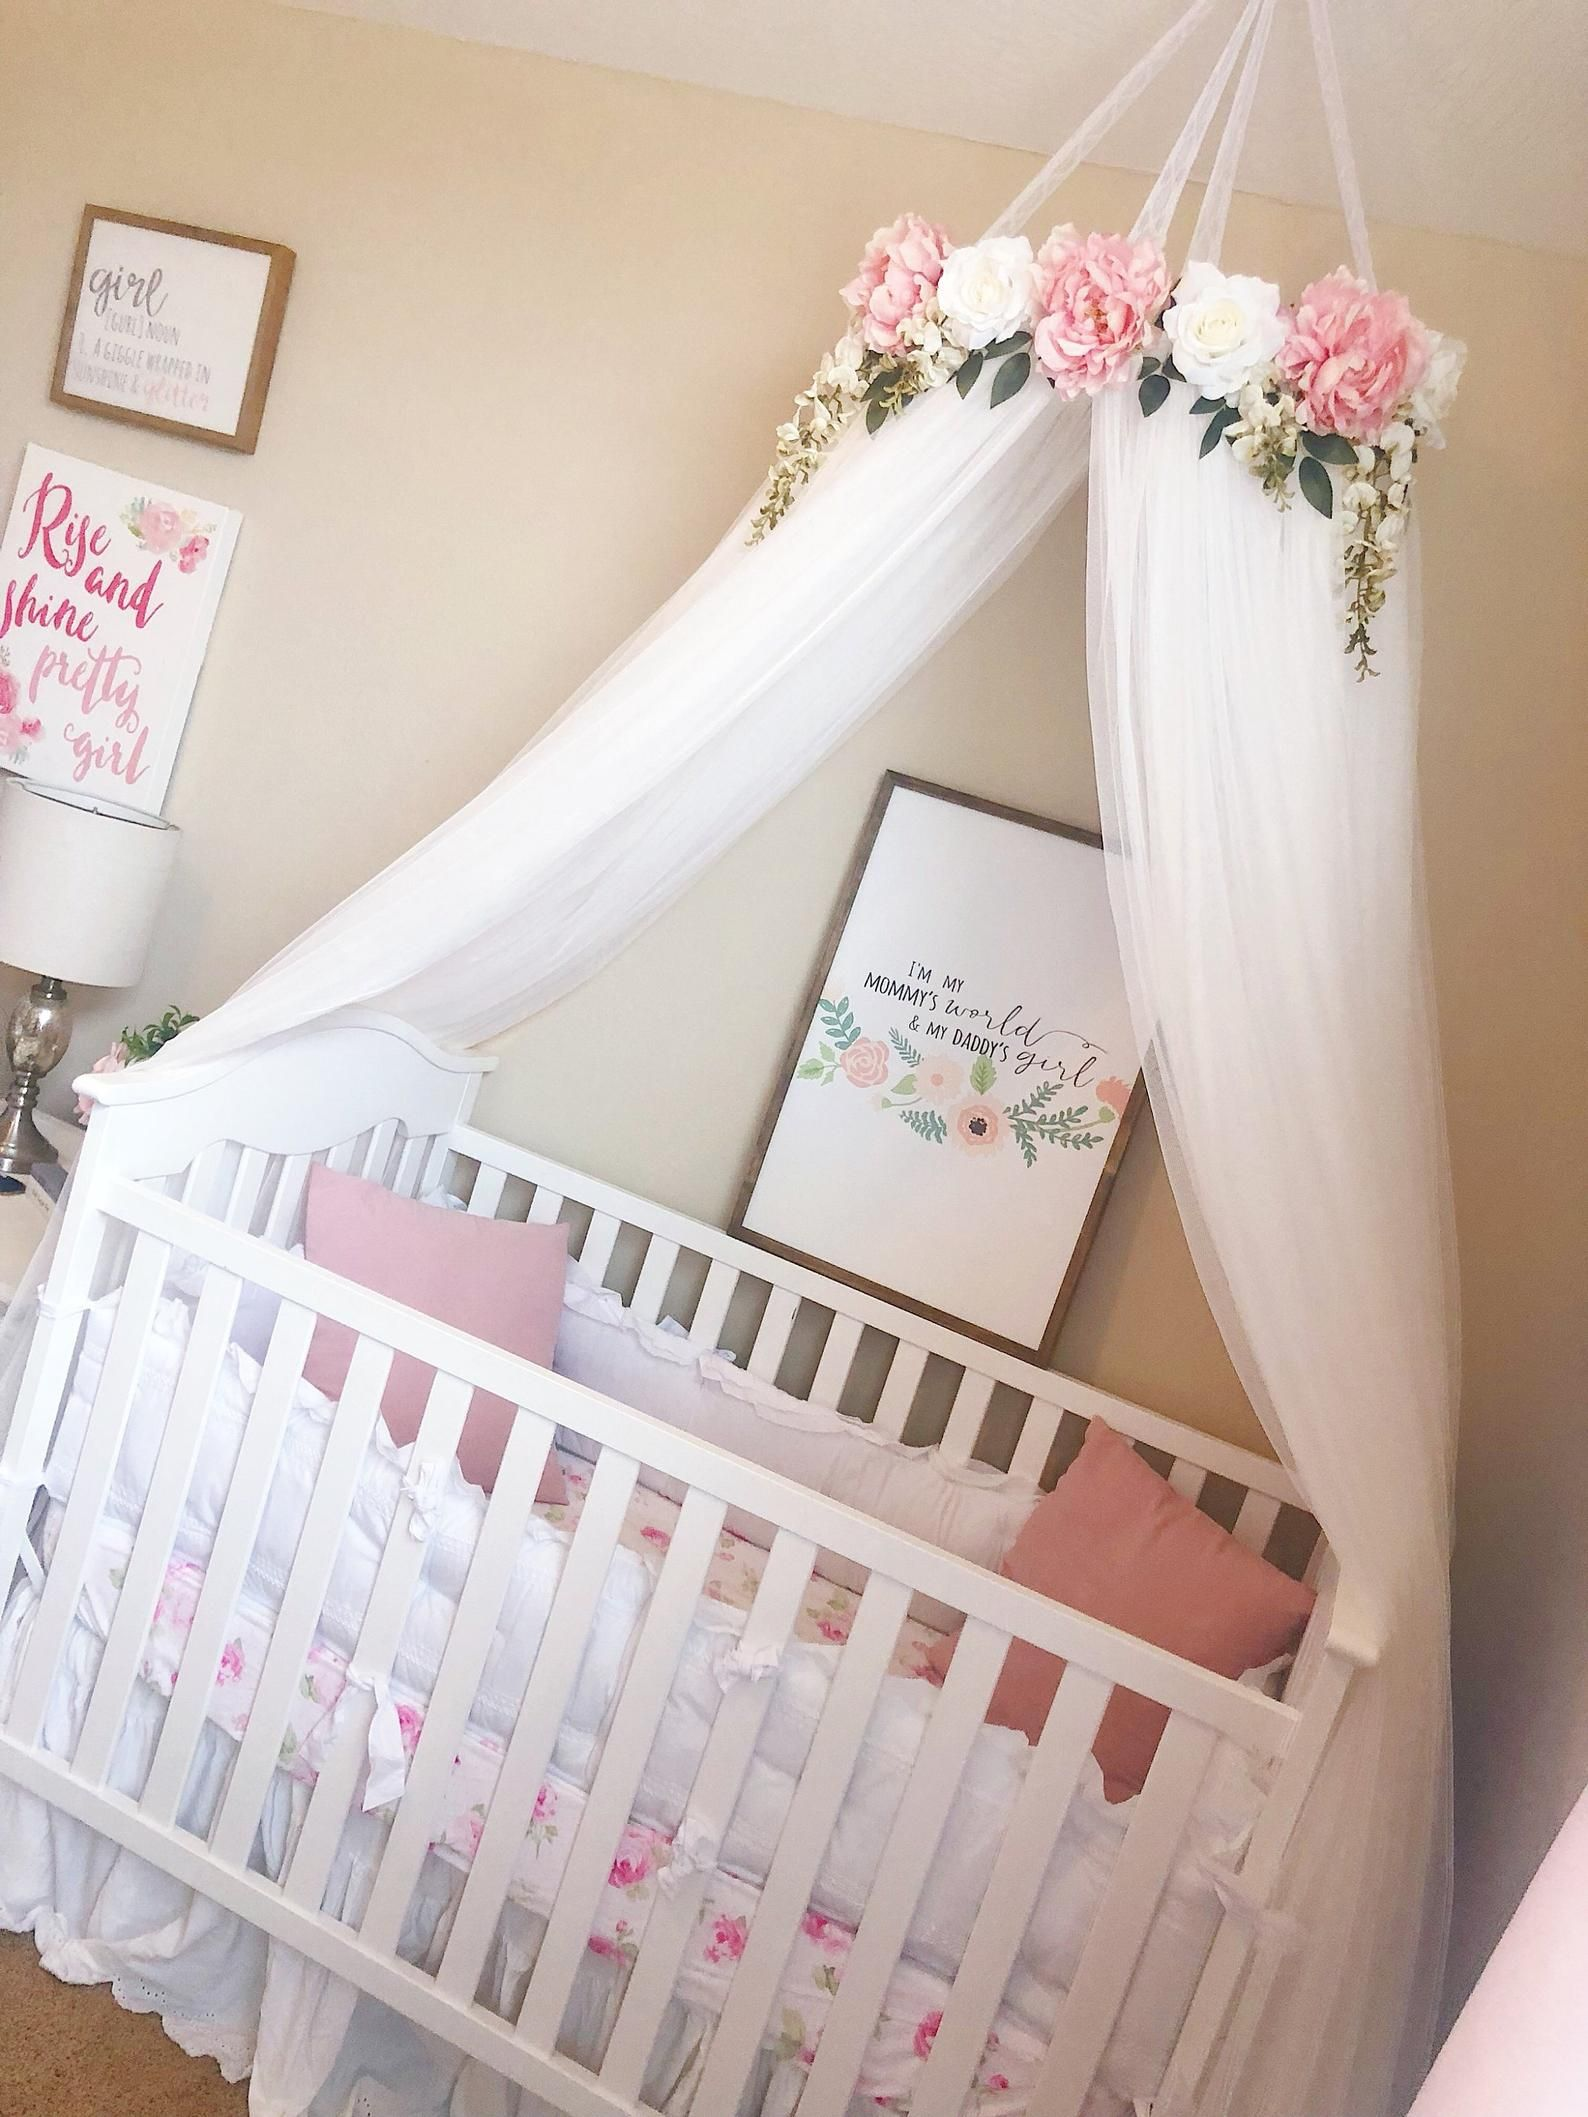 Aurora Canopy Serene Floral Crib Canopy Bed Crown Etsy In 2020 Girl Nursery Room Crib Canopy Bed Crown